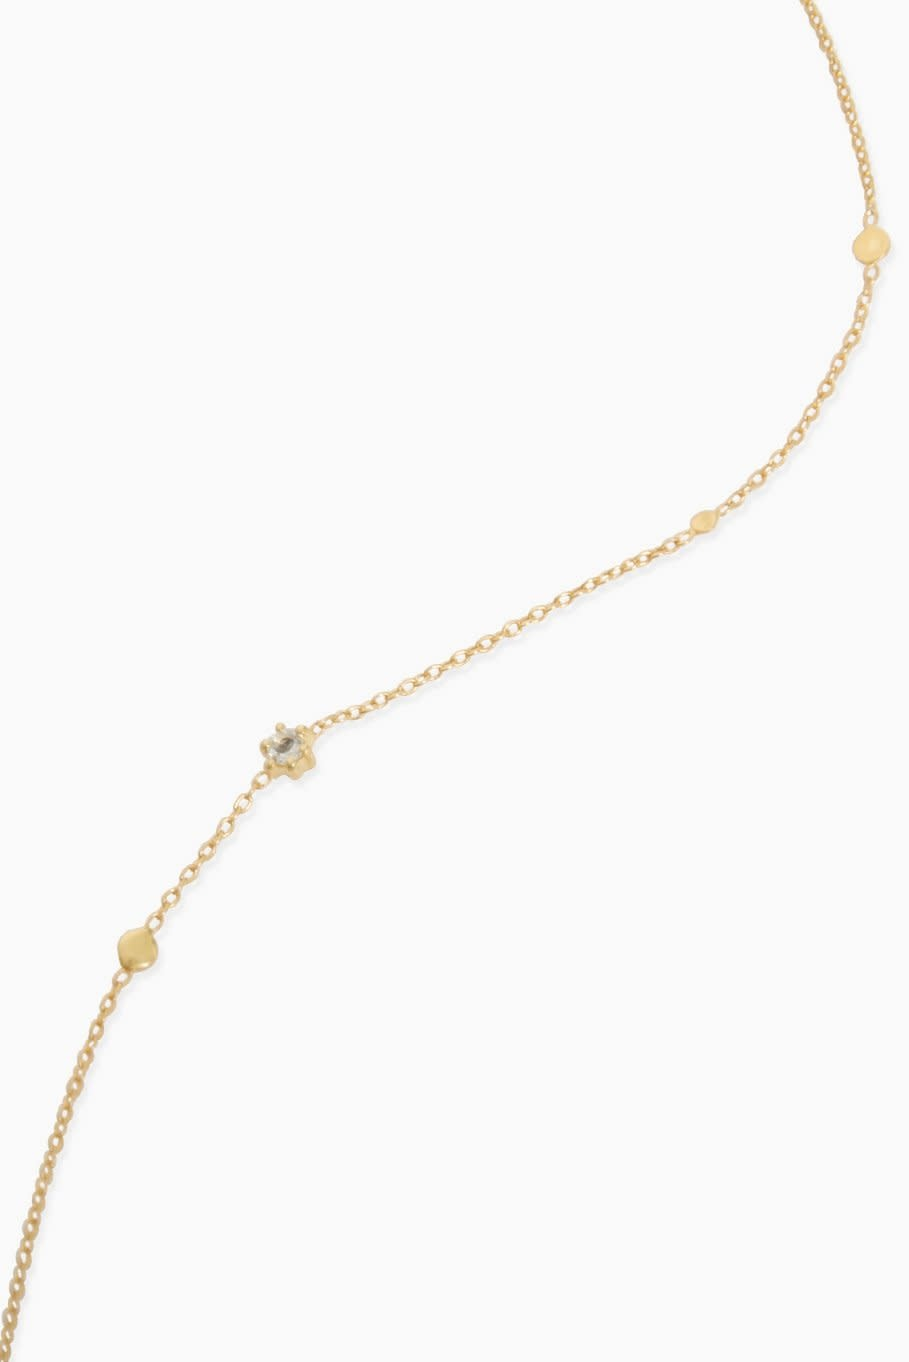 Détail Necklace Michelle green amethyst gold plated (8681)